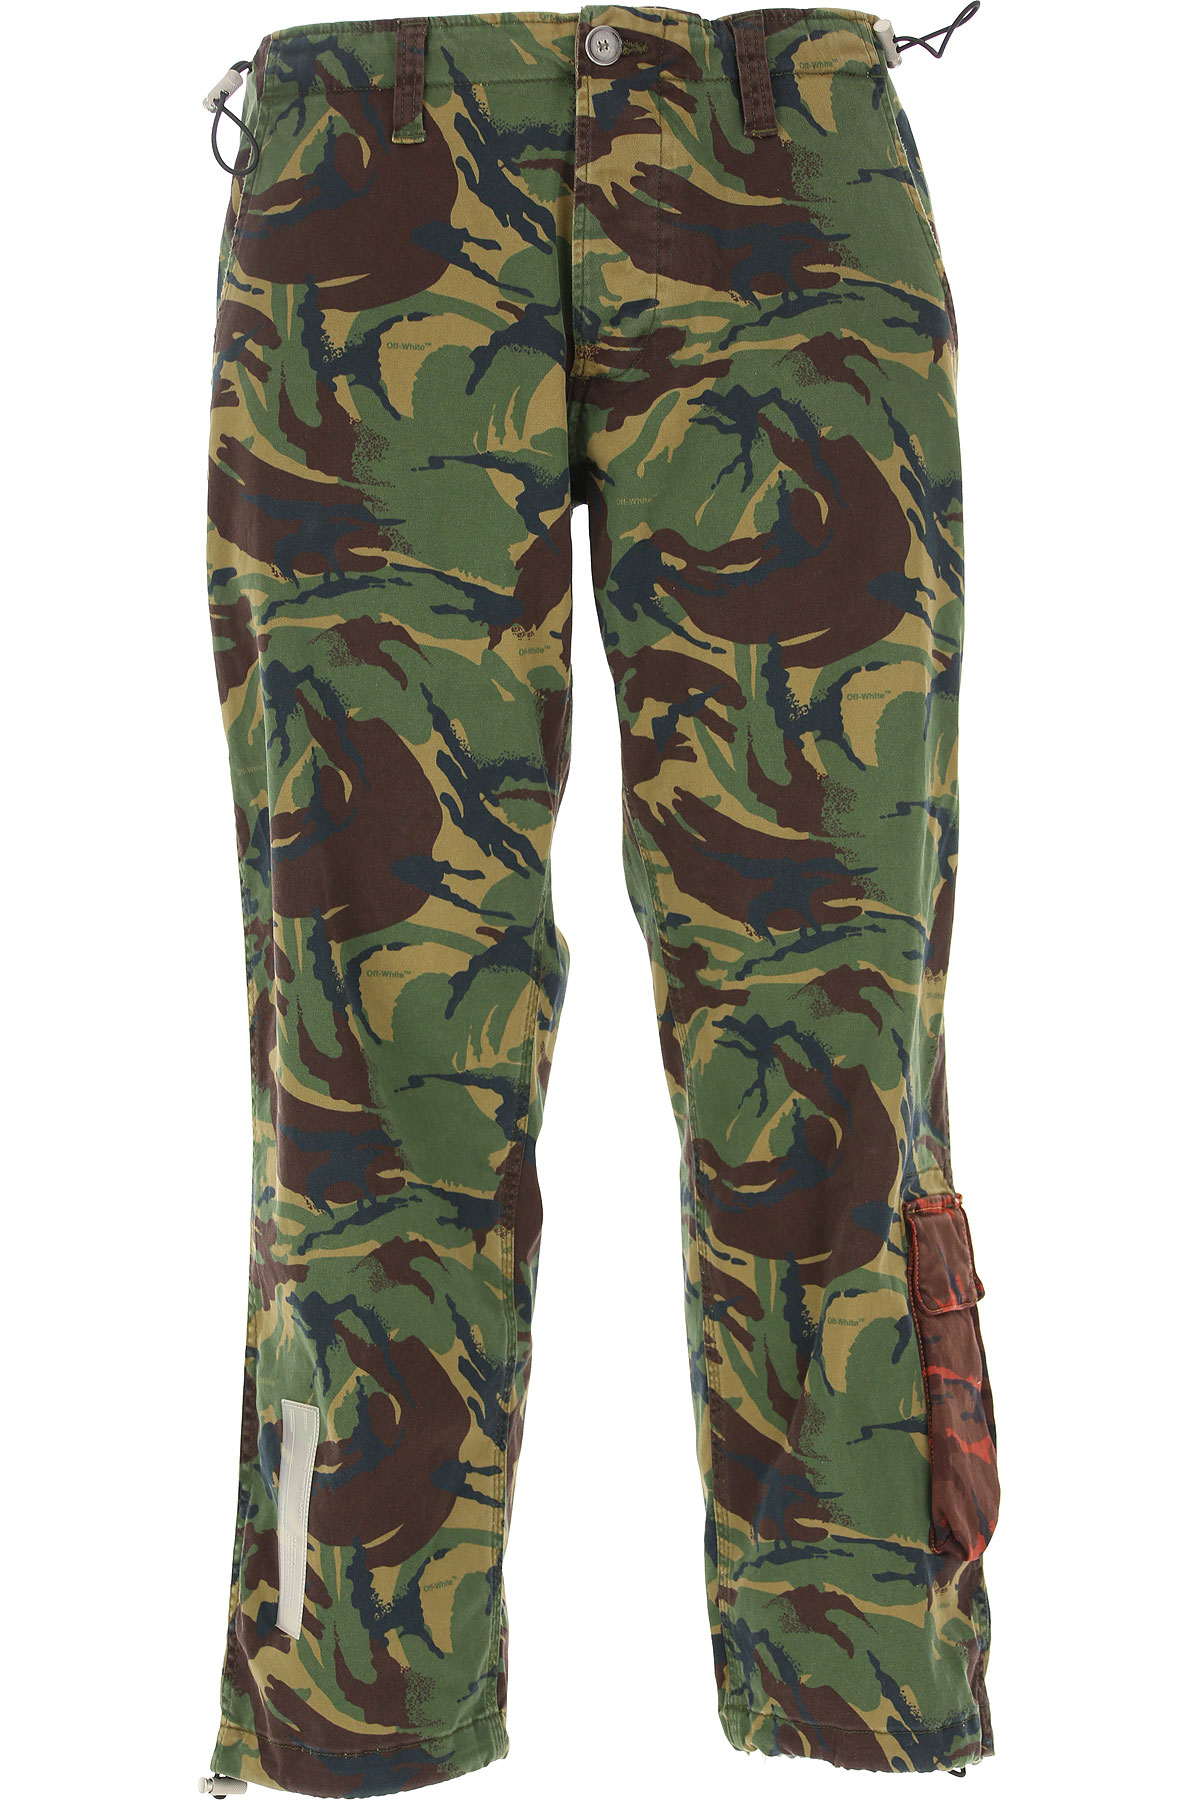 Off-White Virgil Abloh Pants for Men On Sale in Outlet, camouflage, Cotton, 2019, 29 30 32